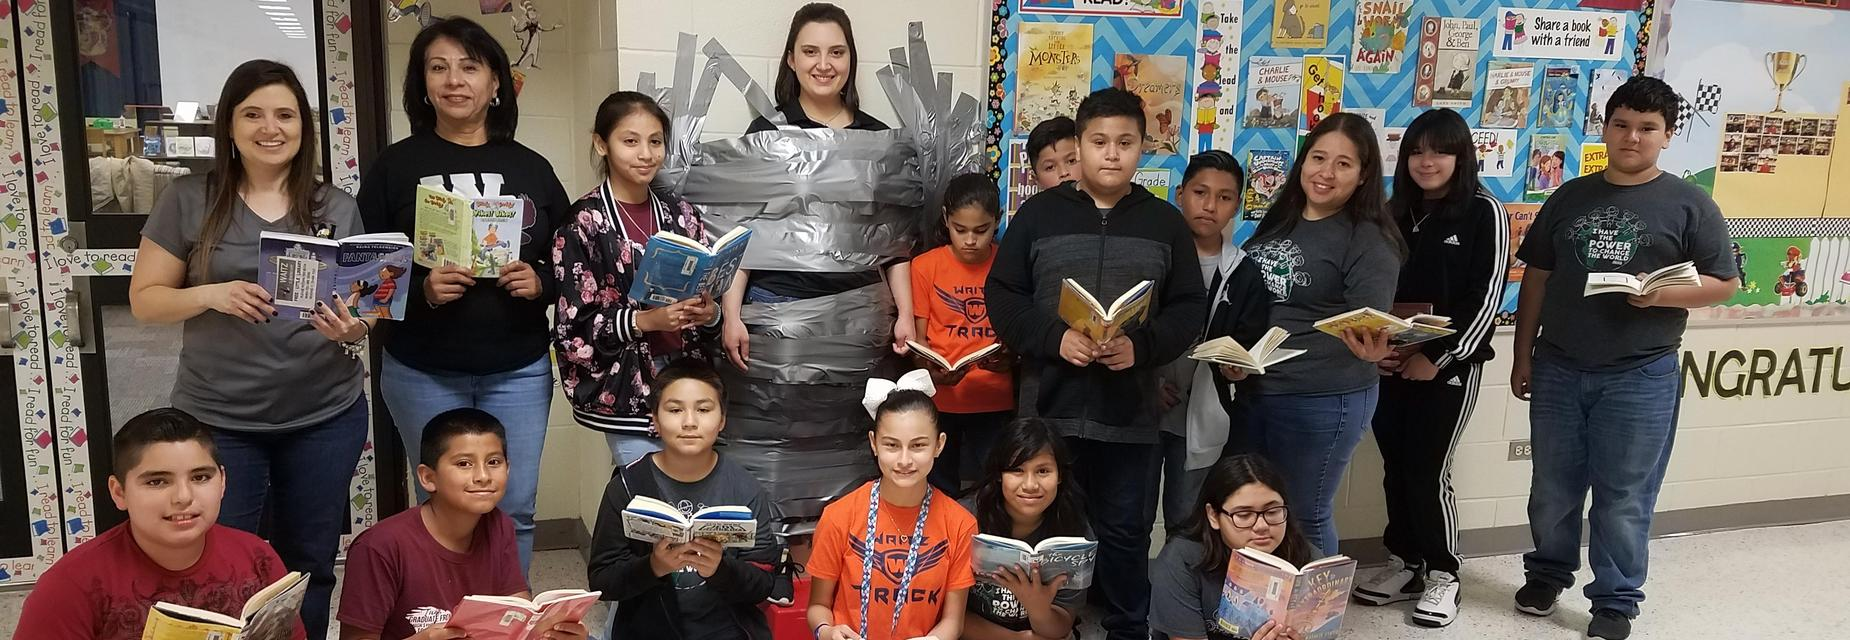 Teacher stuck on reading - taped to wall